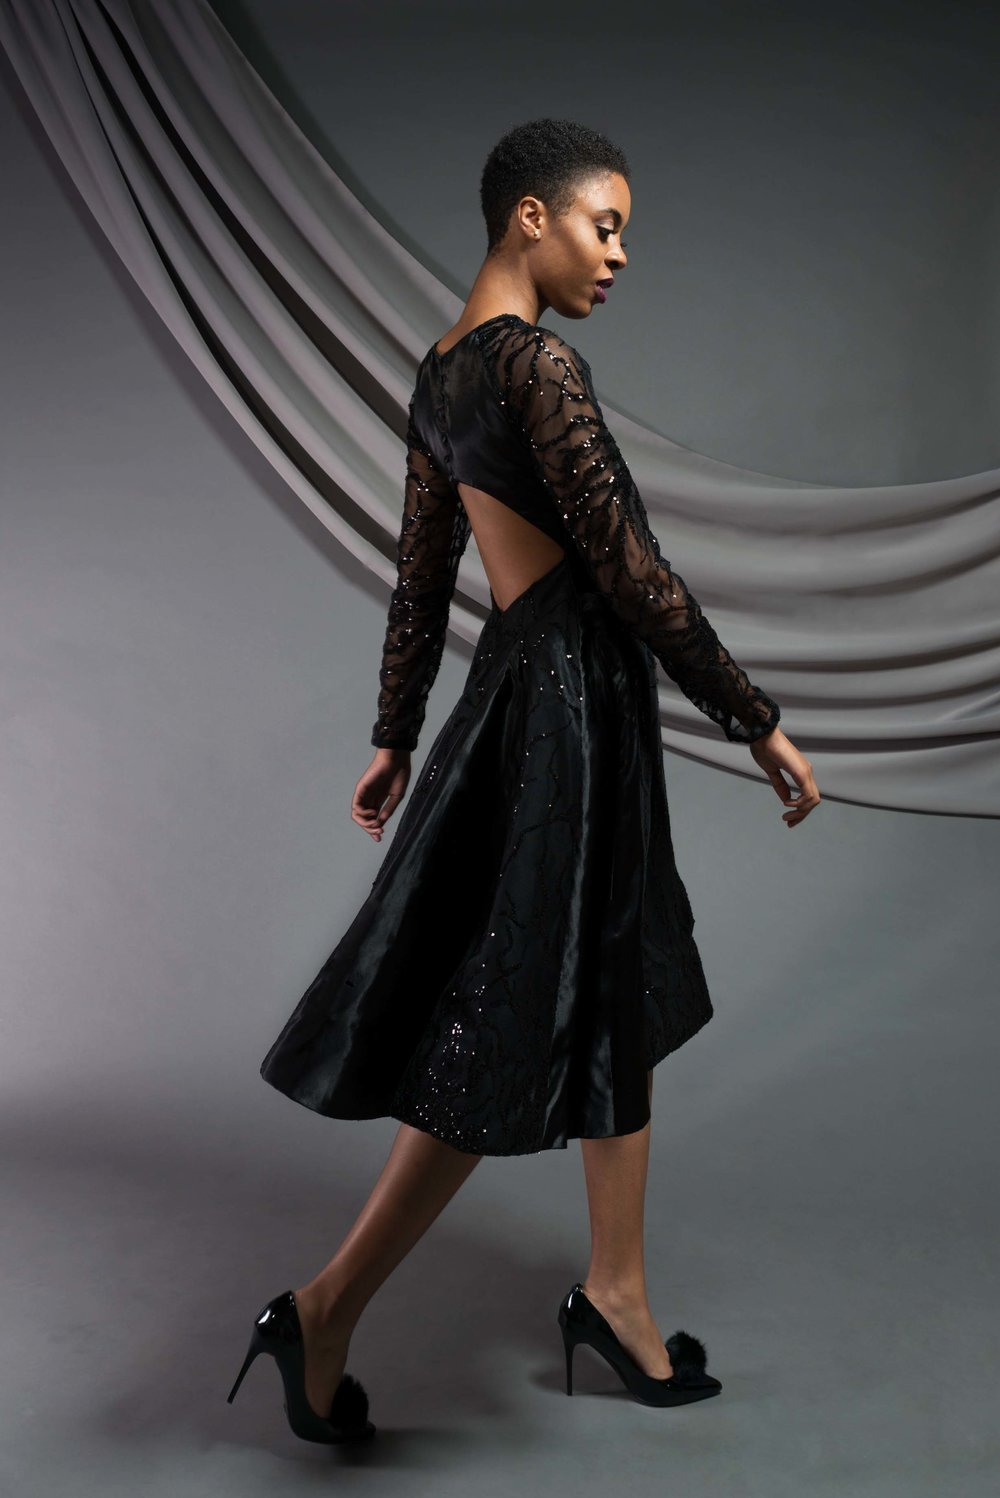 black-sequin-gown-lb.jpg